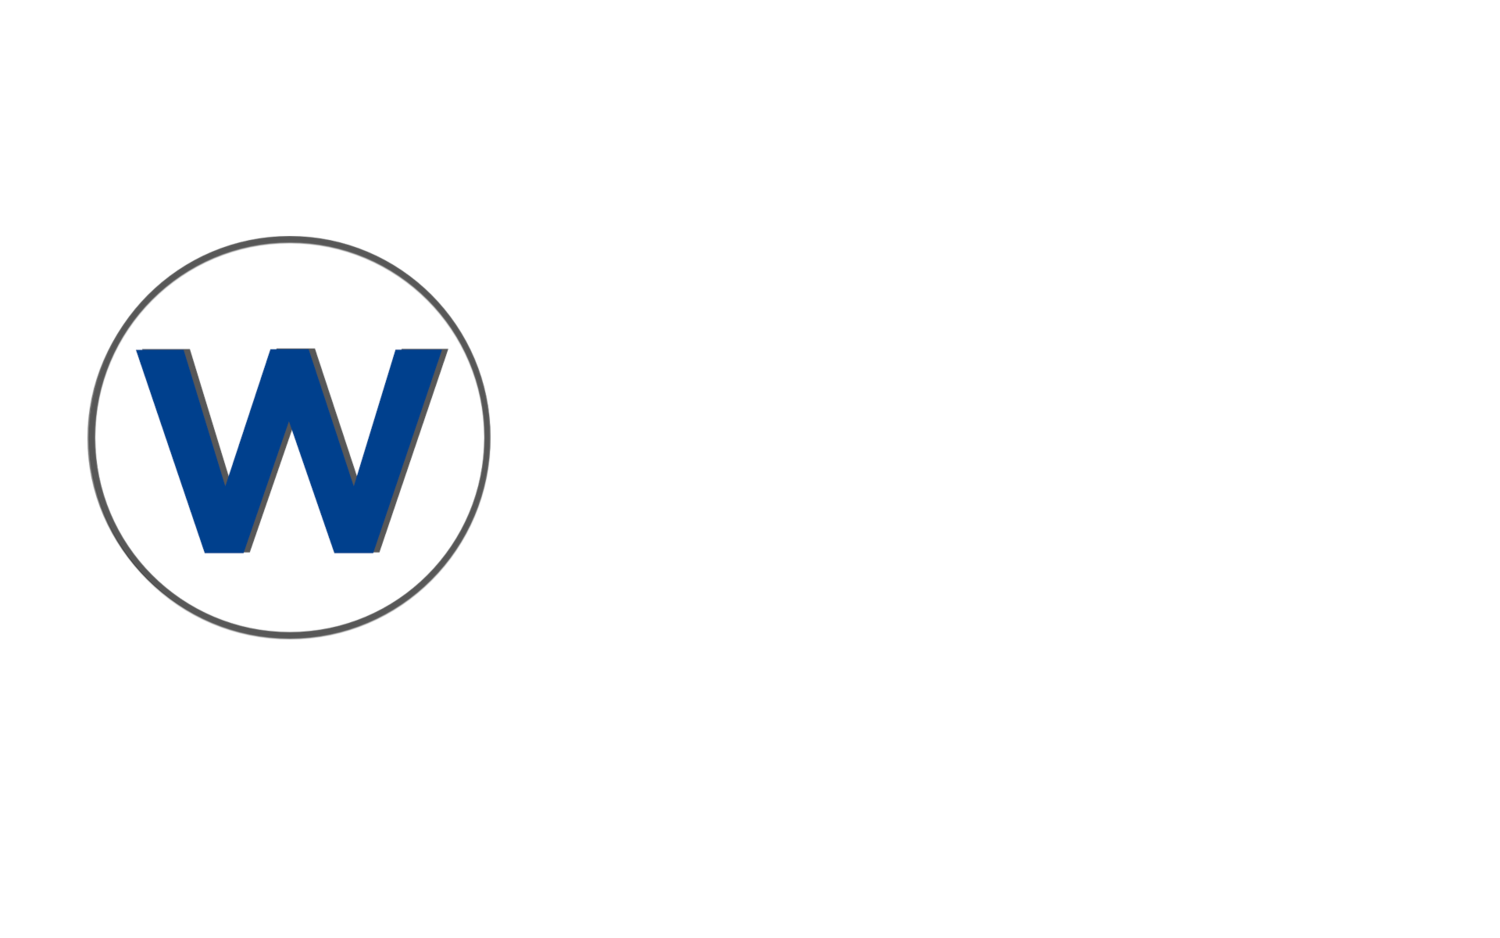 Warner Mechanical Corporation